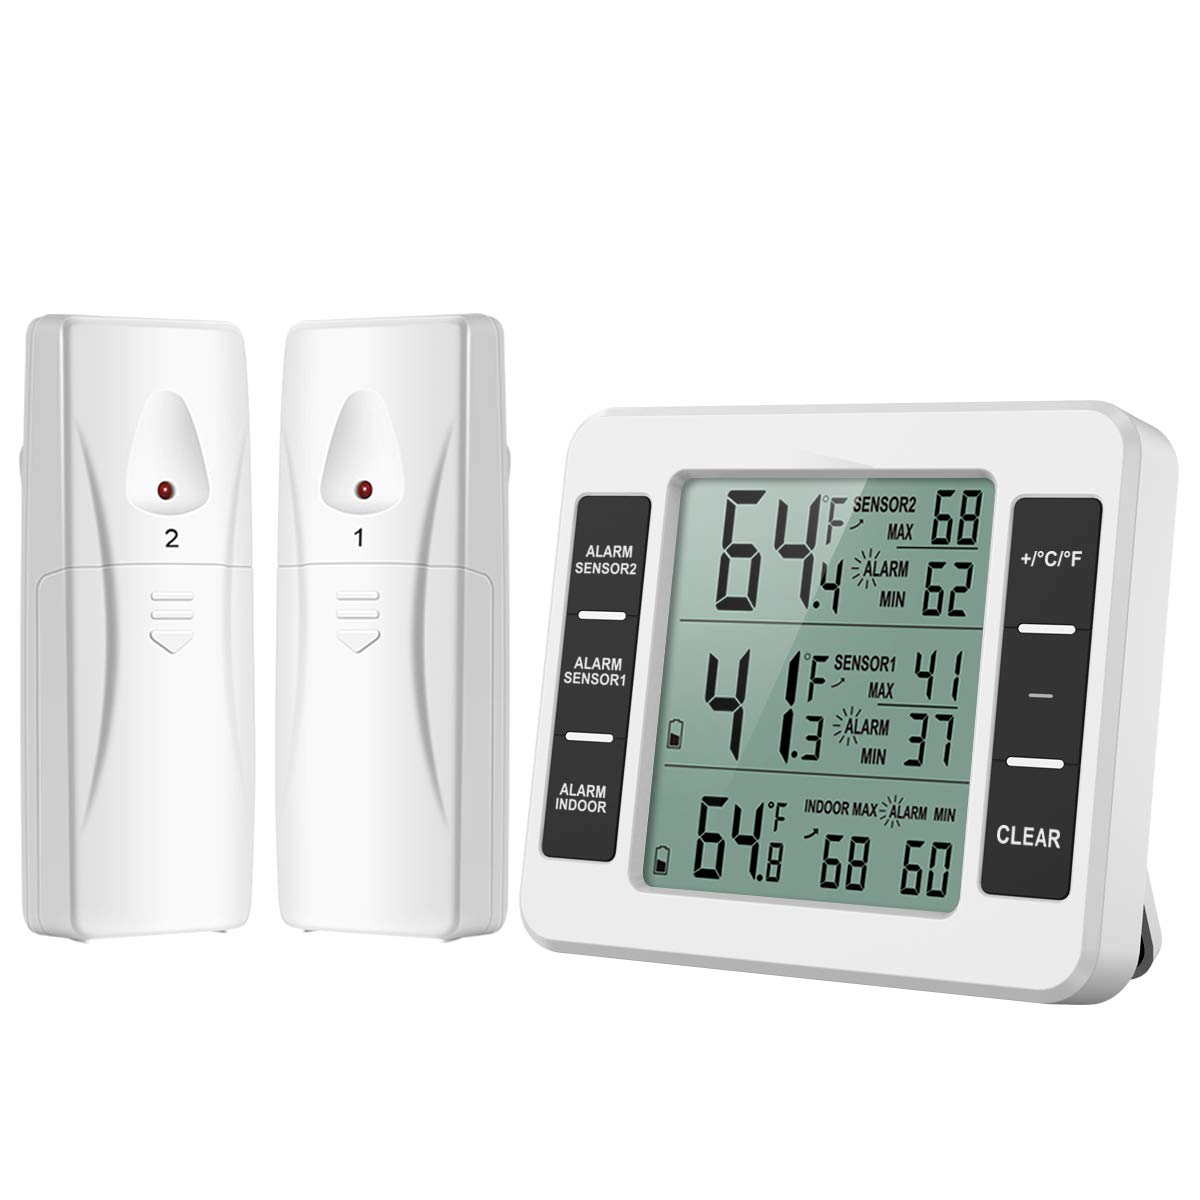 【NEW VERSION】Indoor Outdoor Thermometer, Refrigerator Thermometer, Sensor Temperature Monitor with Audible Alarm Temperature Gauge for Freezer Kitchen Home (Battery not Included)